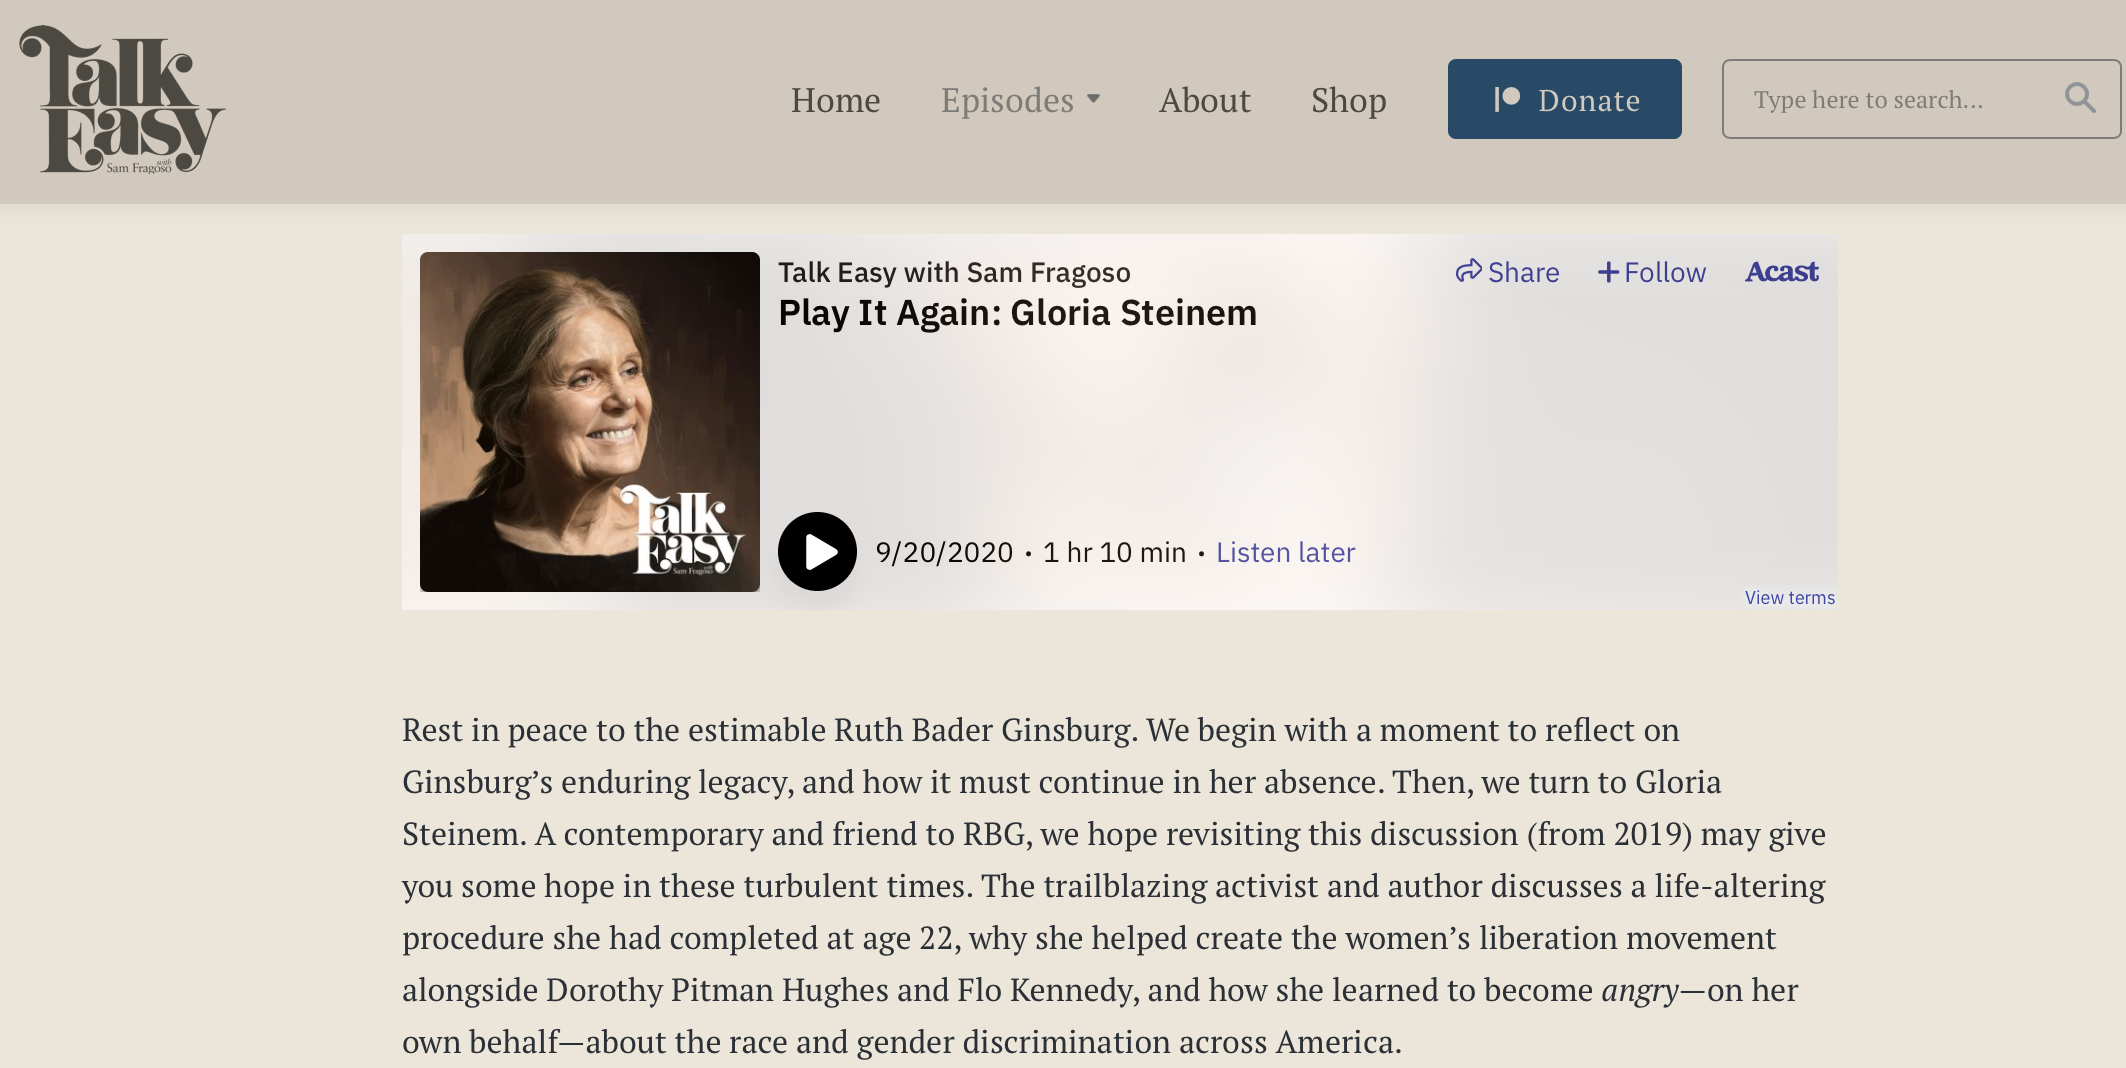 Podcast Talk Easy uses embed player on their website